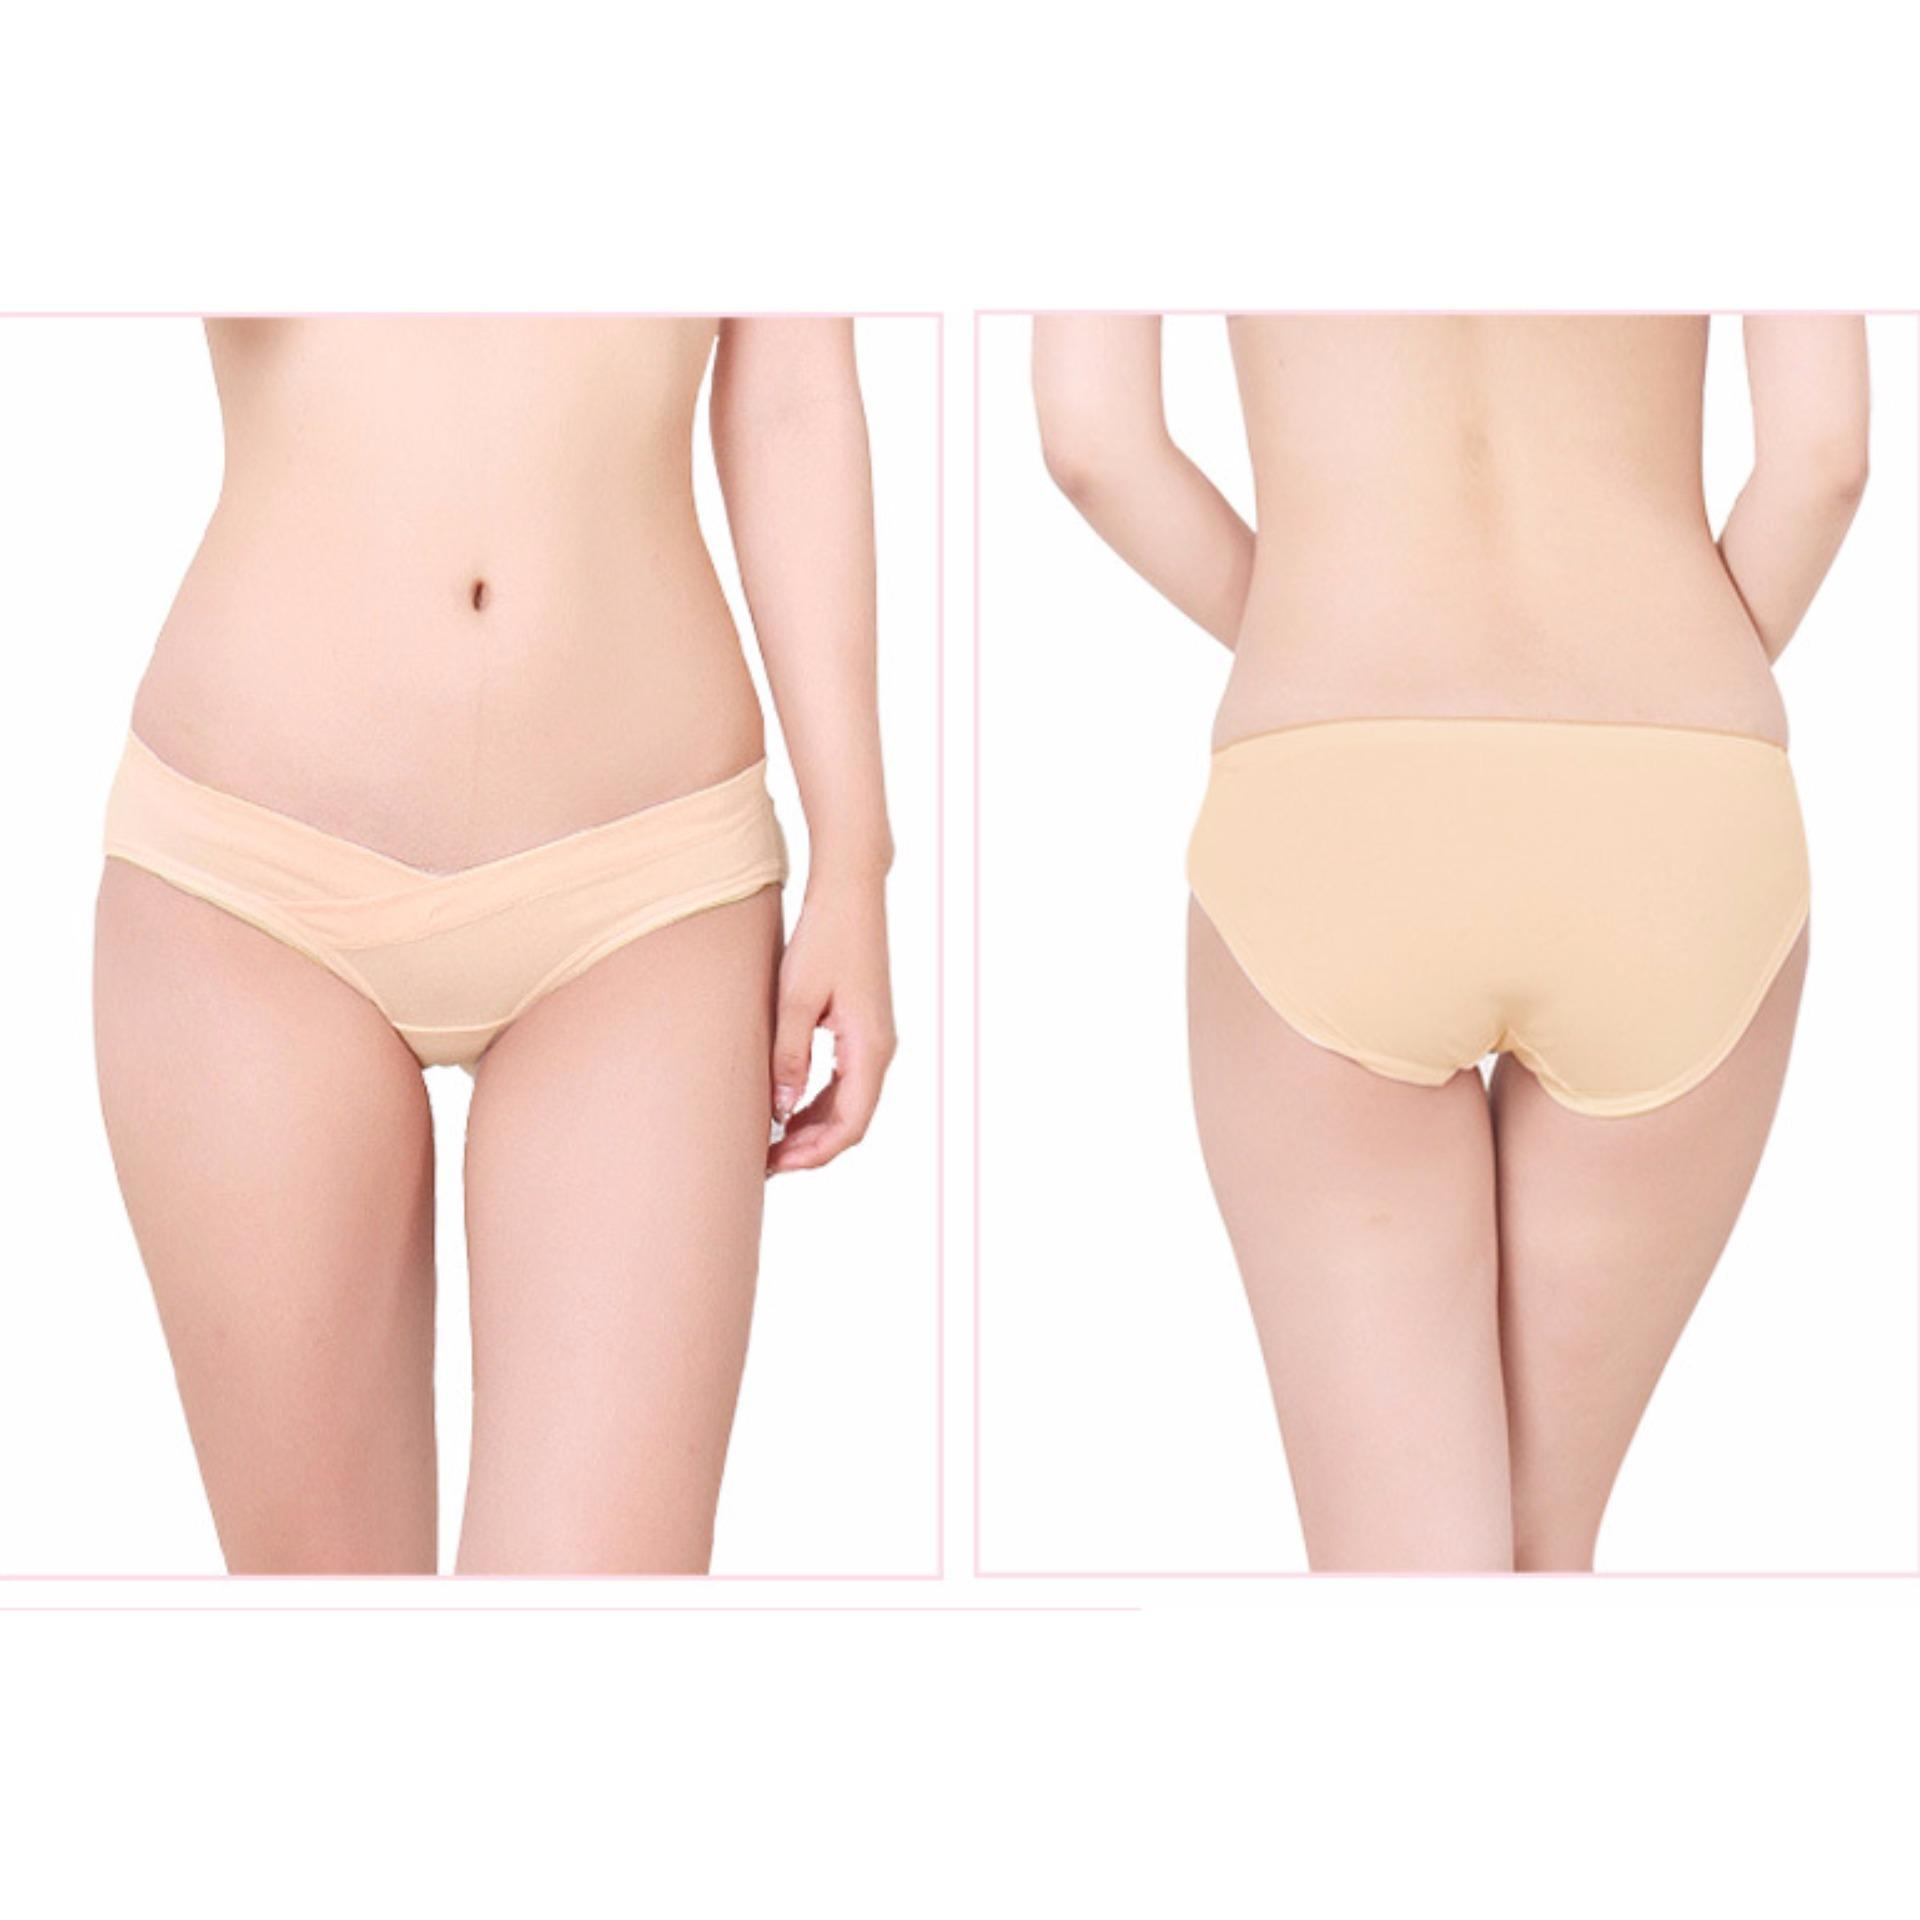 ... 3Pcs Pregnancy Maternity Underwear Pregnant Panties WomenUnder the Bump Maternity Underwear(skin color) ...